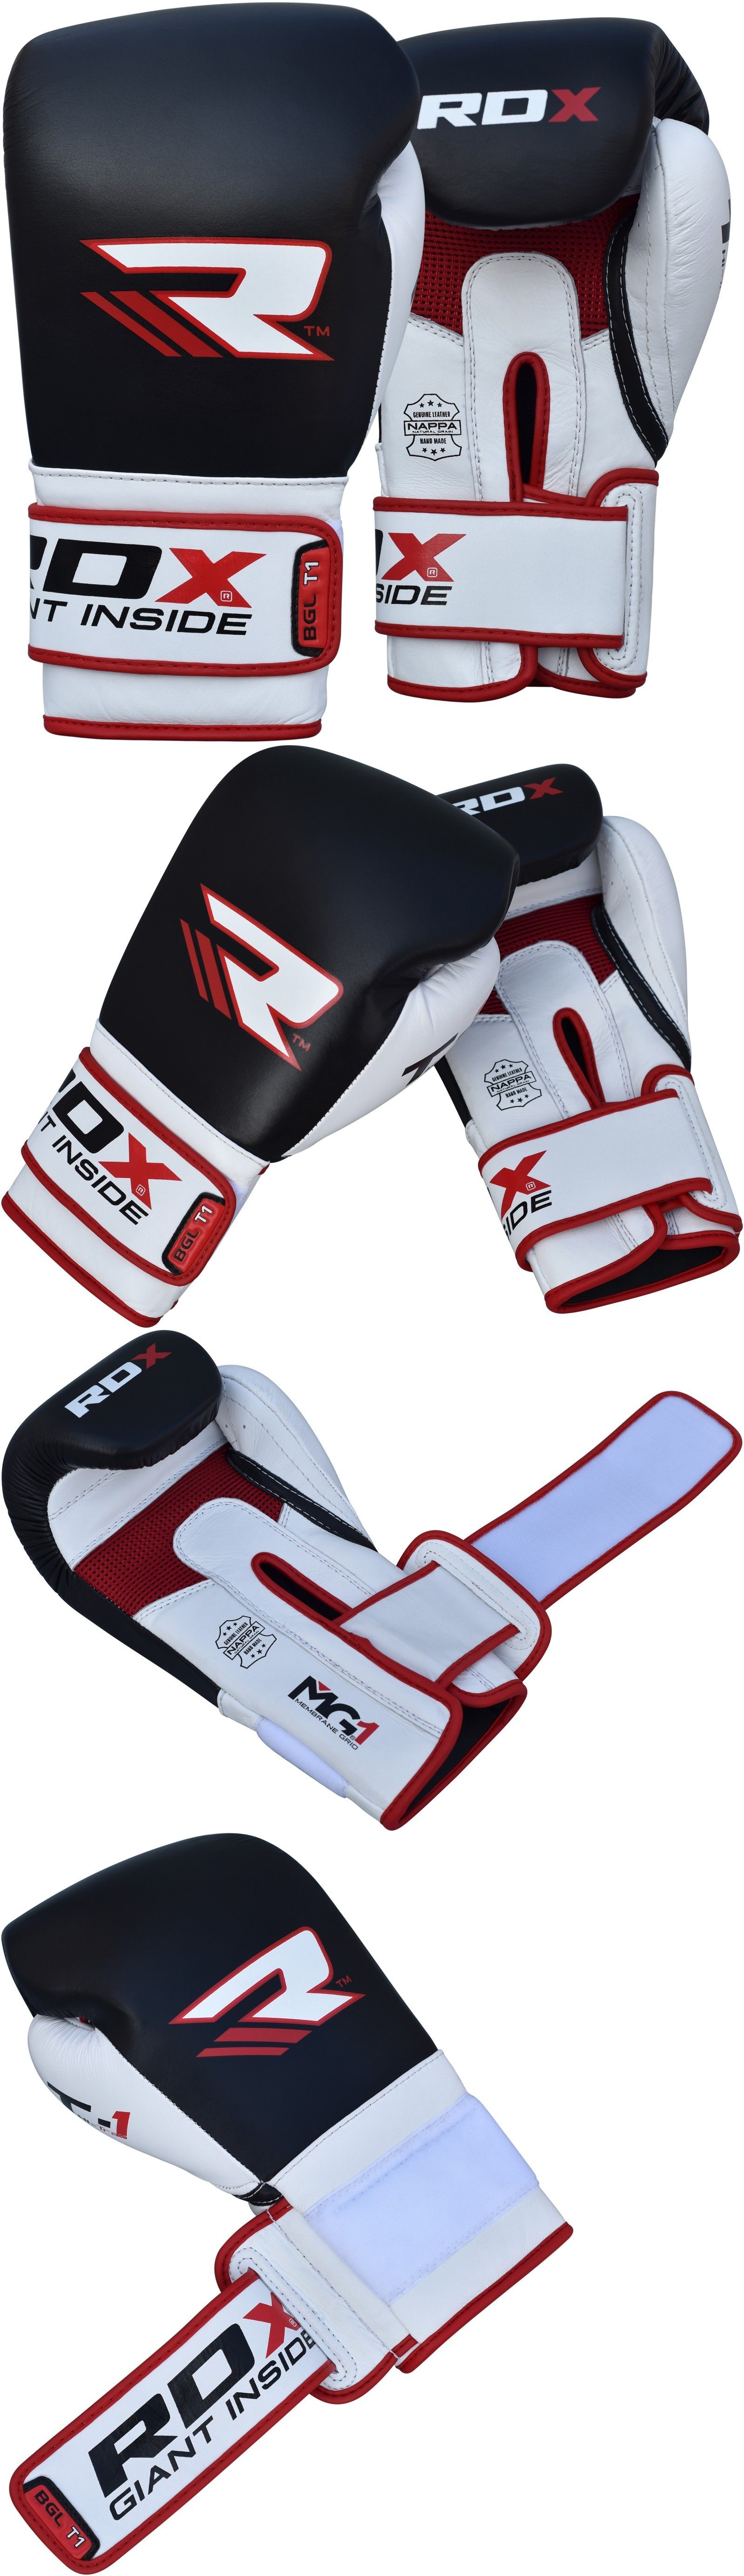 Gloves Martial Arts Rdx Boxing Gloves Leather Training Muay Thay Sparring Glove Black